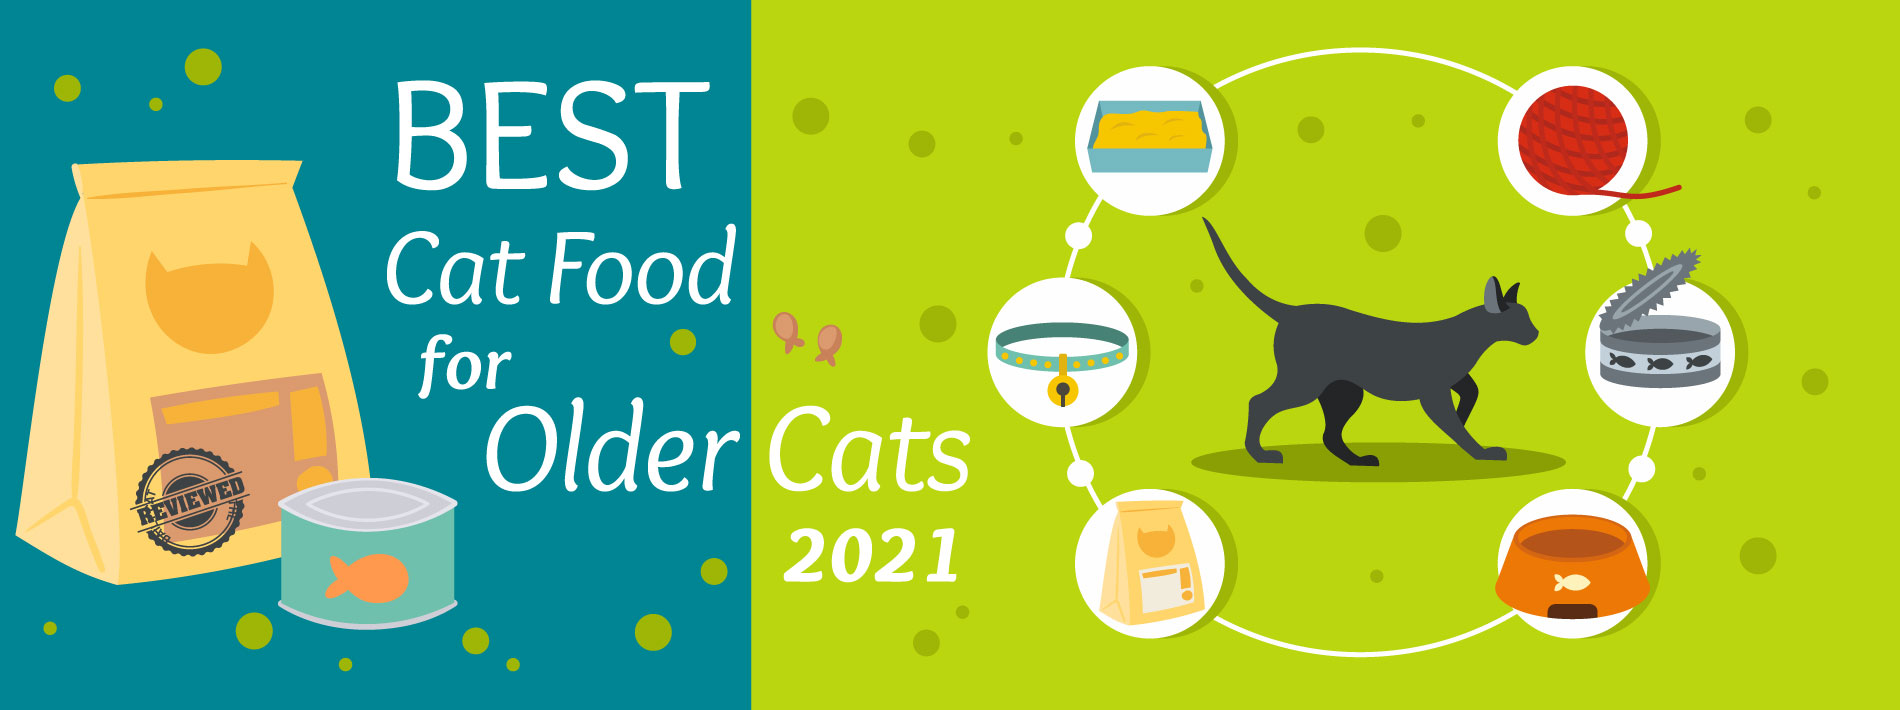 The Daily Cat - Best Cat Food for Older Cats Graphic